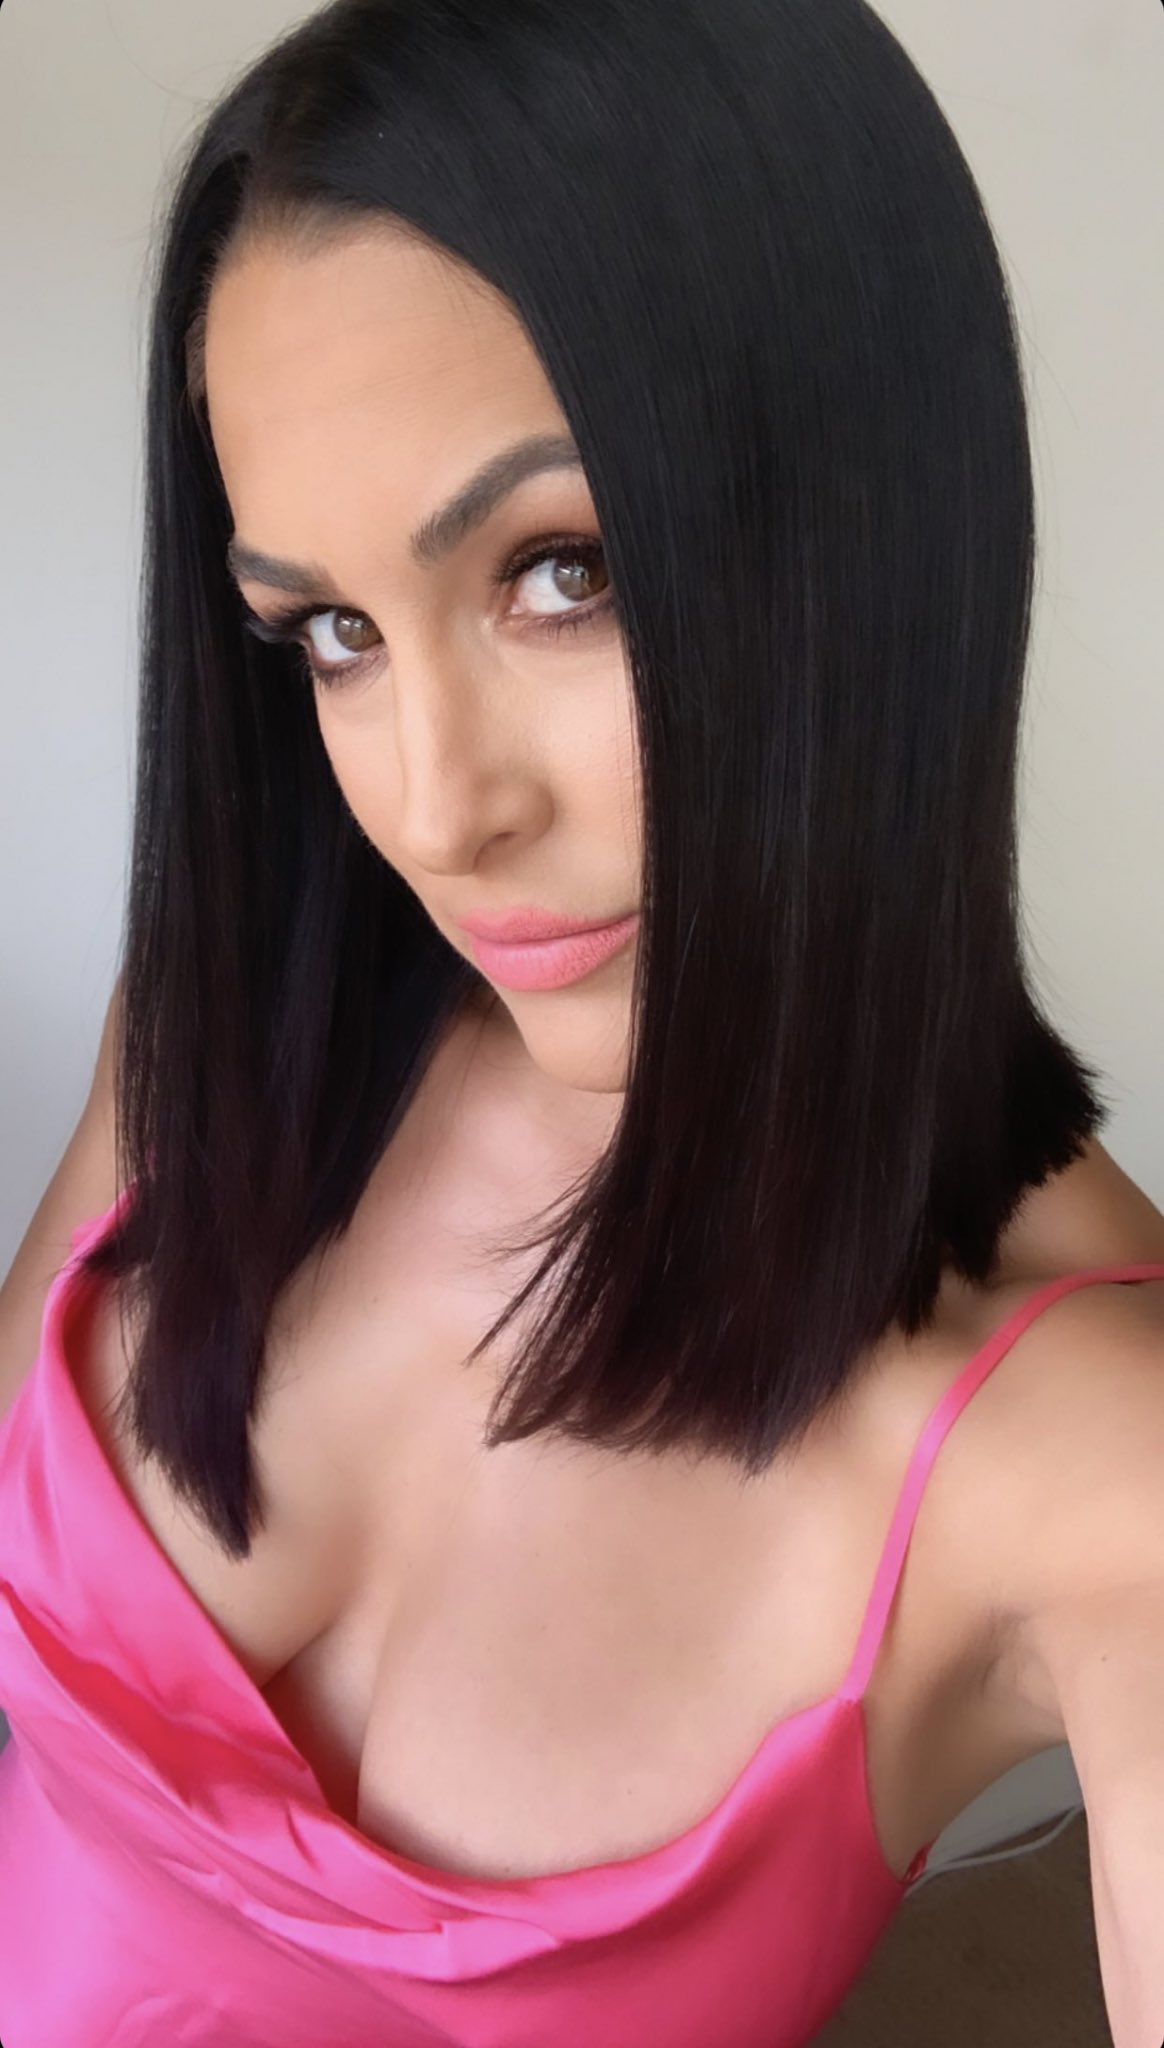 Photos: WWE Star Nikki Bella Continues To Show Off Following New Hair Makeover 178